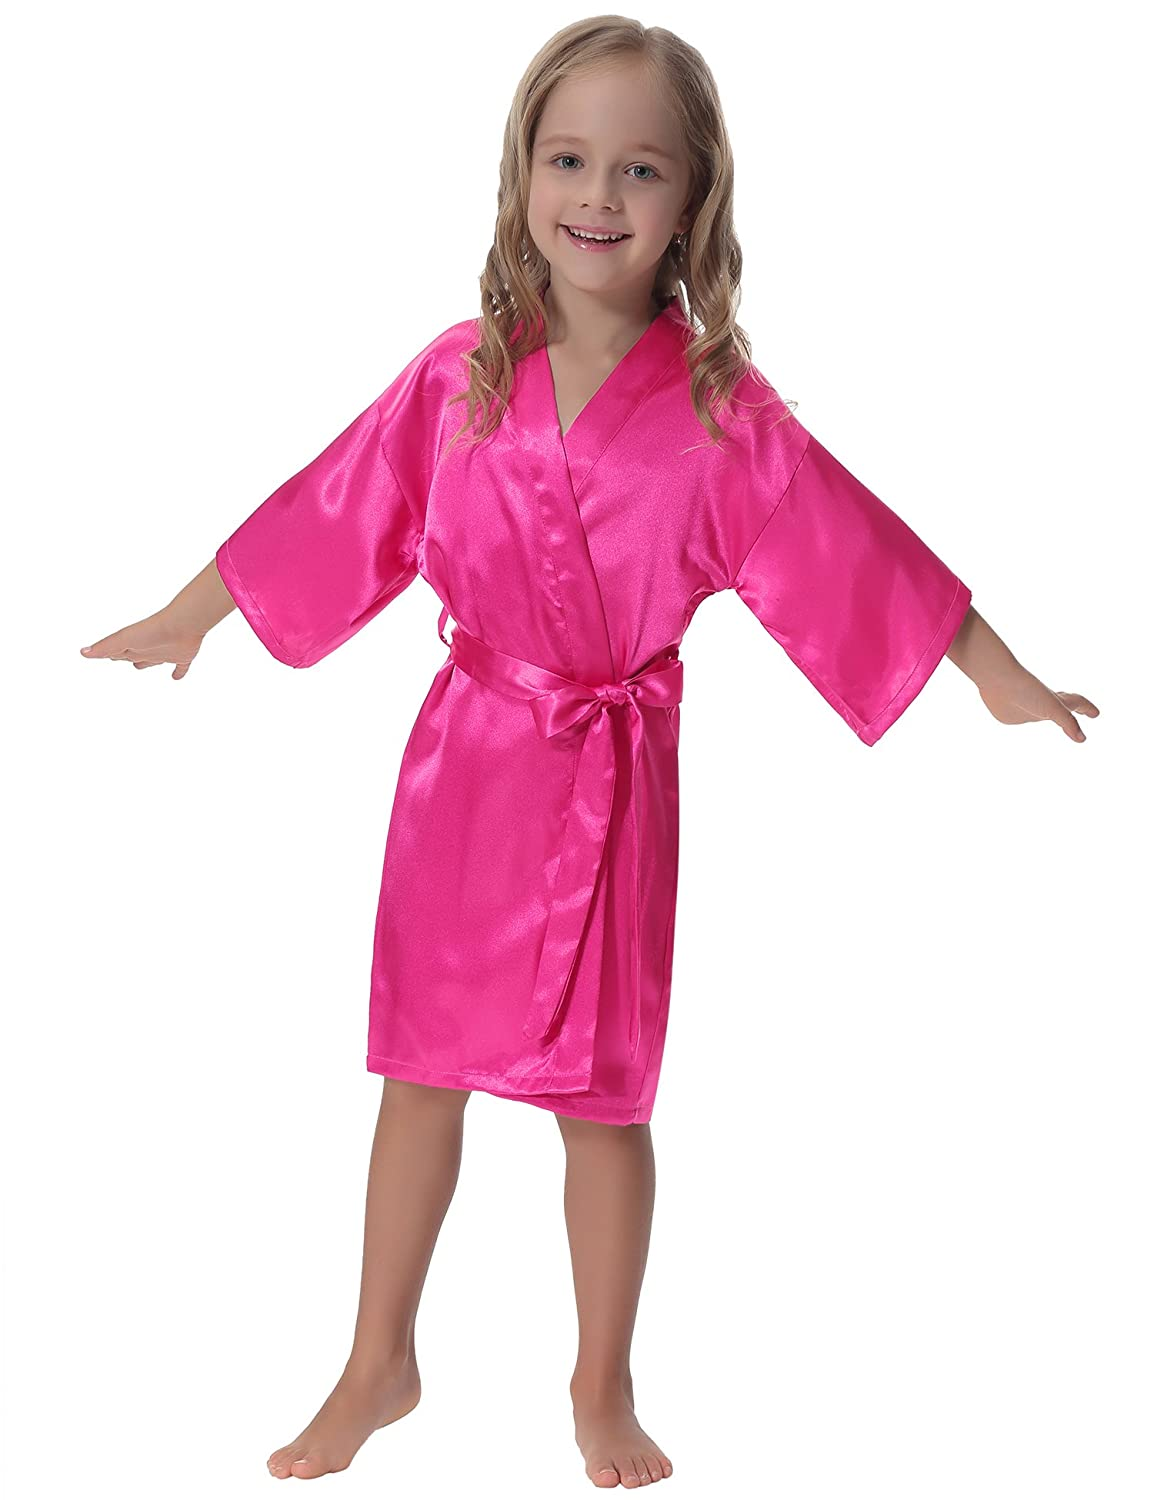 Aibrou Kids' Satin Kimono Robe Bathrobe Nightgown for Spa Party Wedding Birthday AM16081701